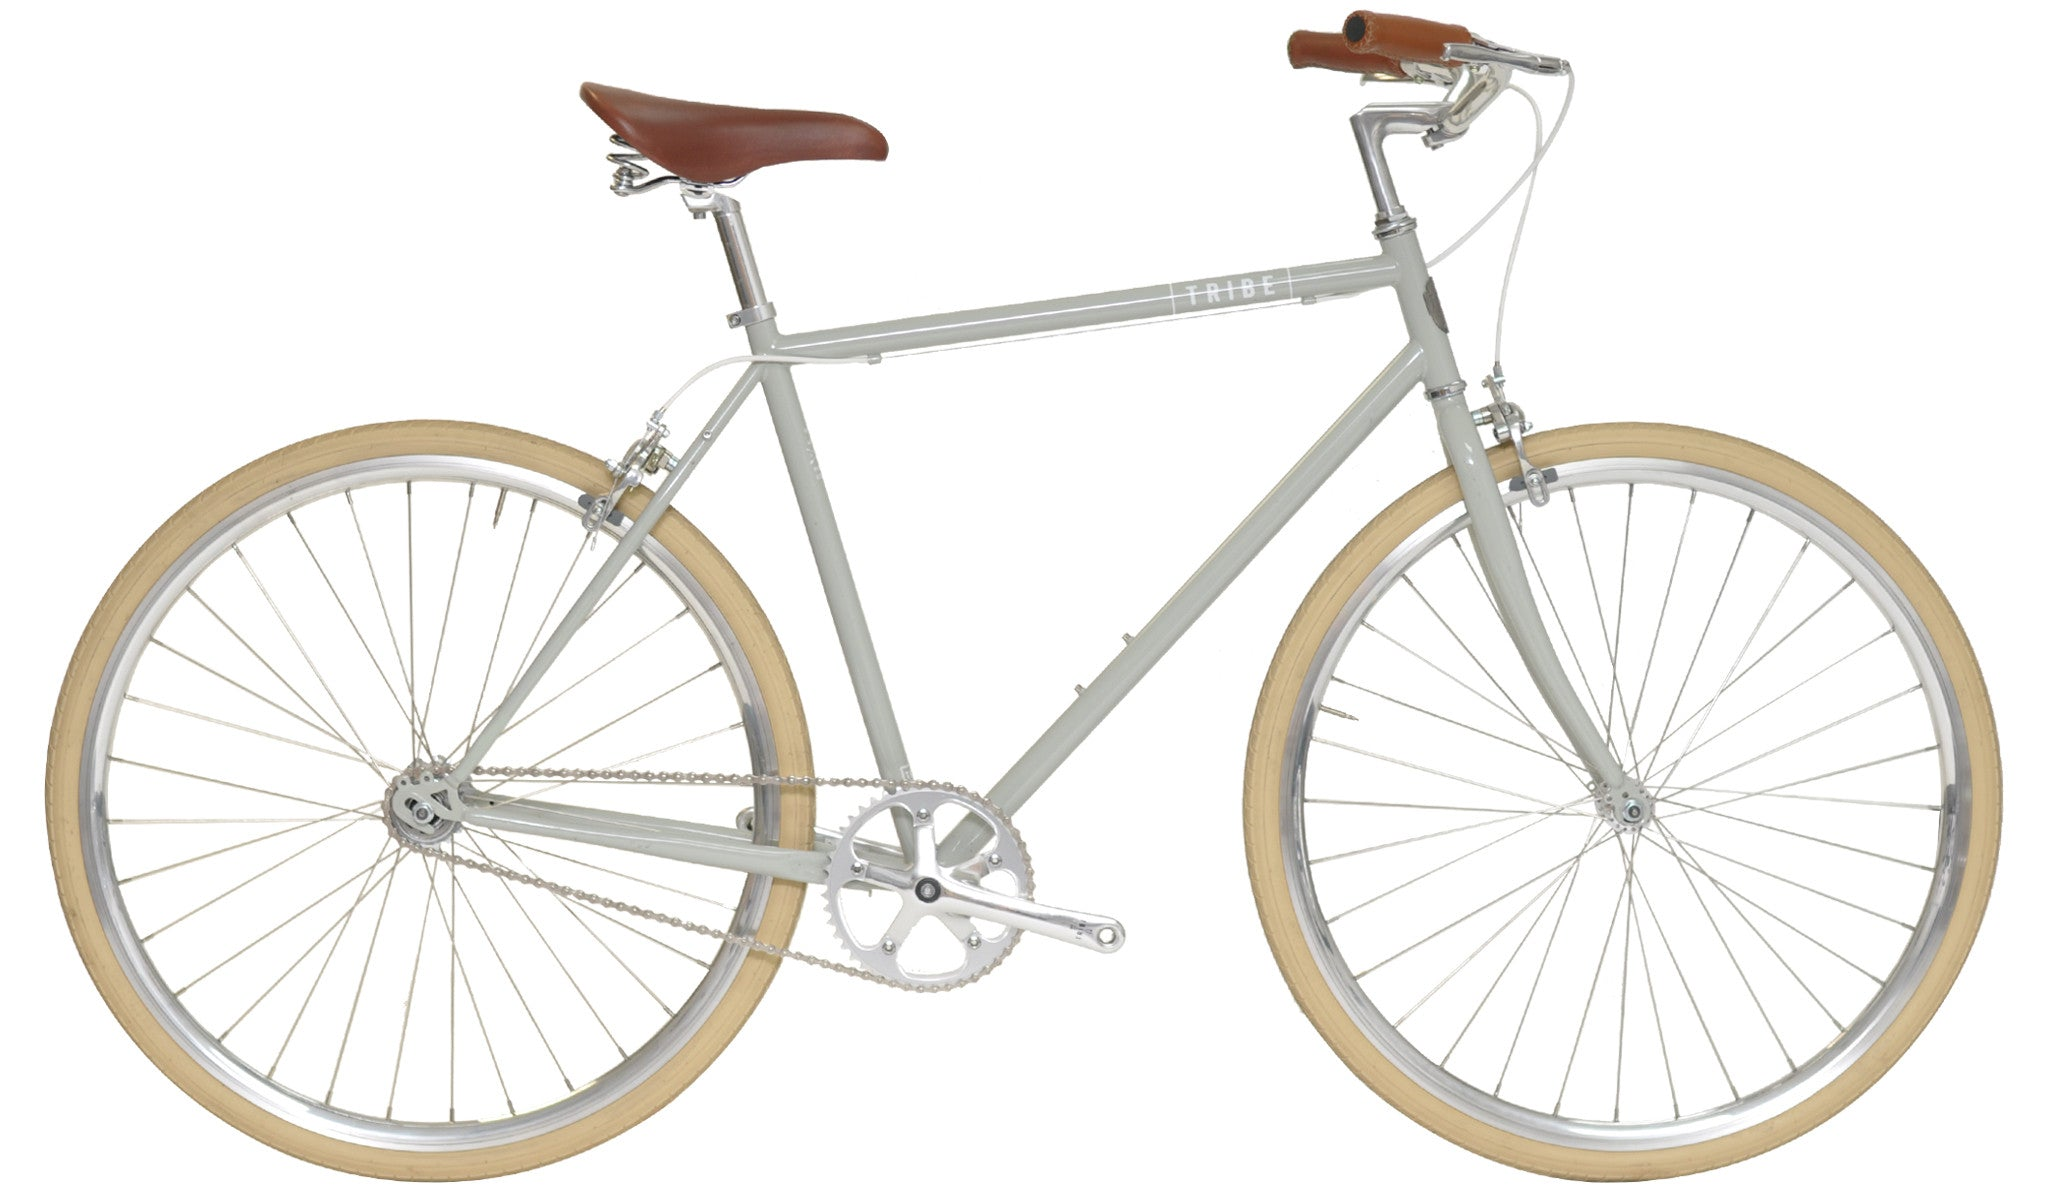 Tribe Bicycle Co. - Single Speed Cruiser - Rambla - Tribe Bicycle Co. ®